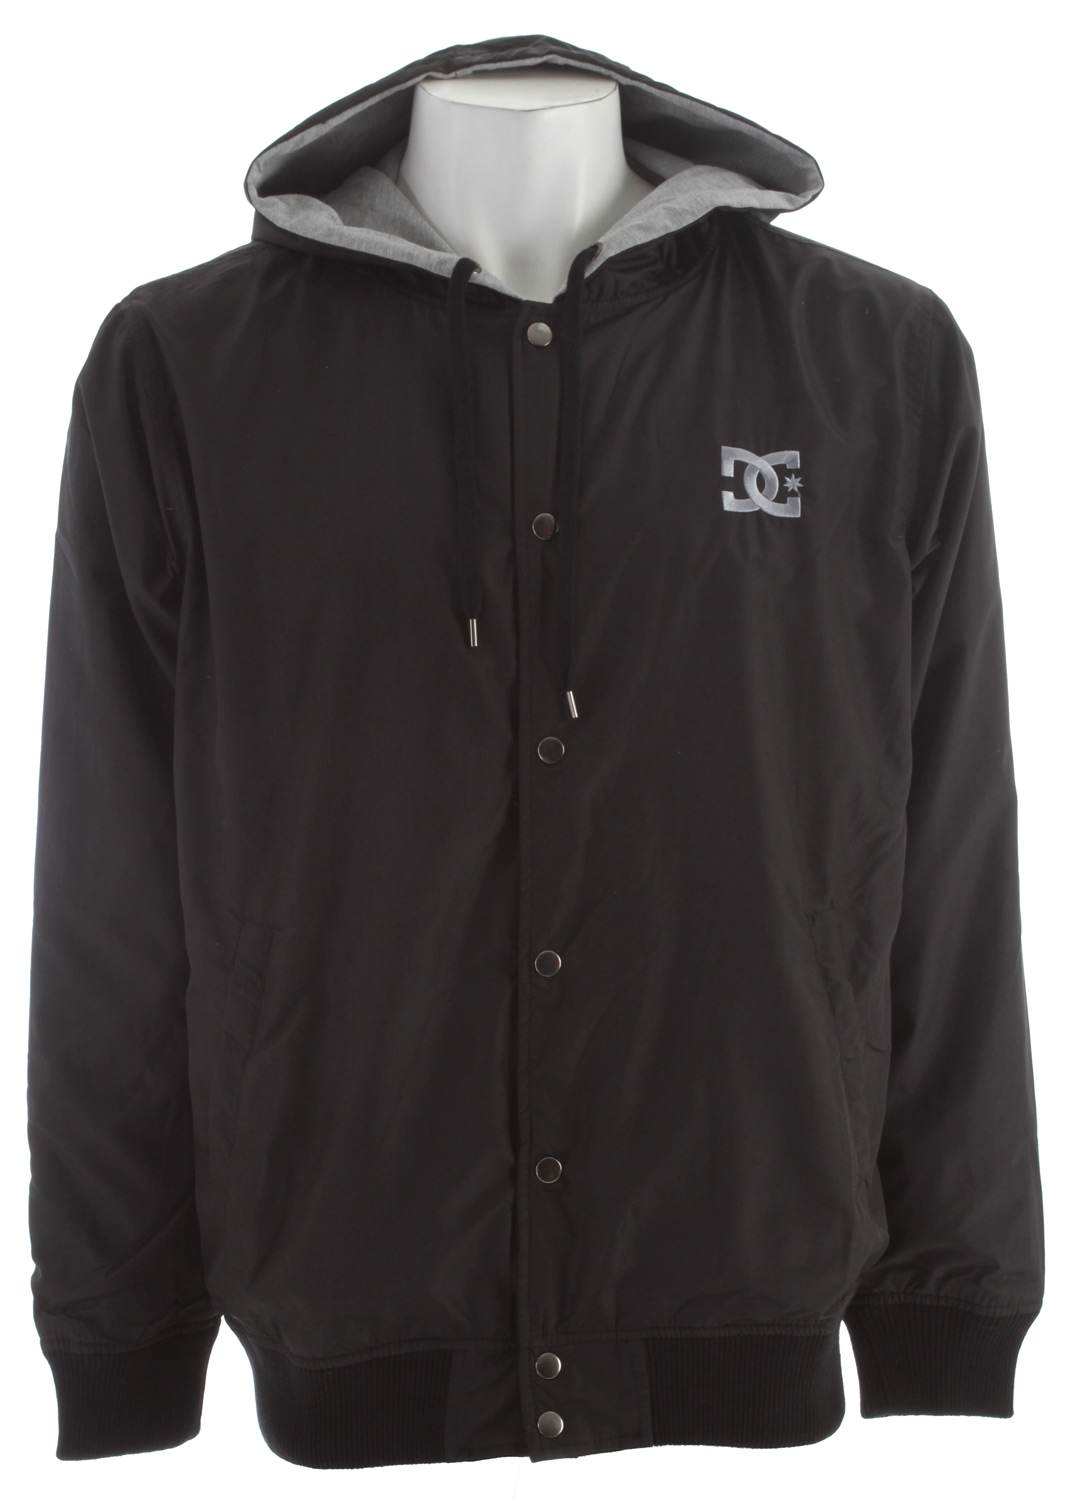 Key Features of the DC Jay Varsity Jacket; Regular fit. DC logo embroidery at left chest. Drawstring hood. Pouch pockets. Snap button closure. 60% cotton/40% polyester - $49.95